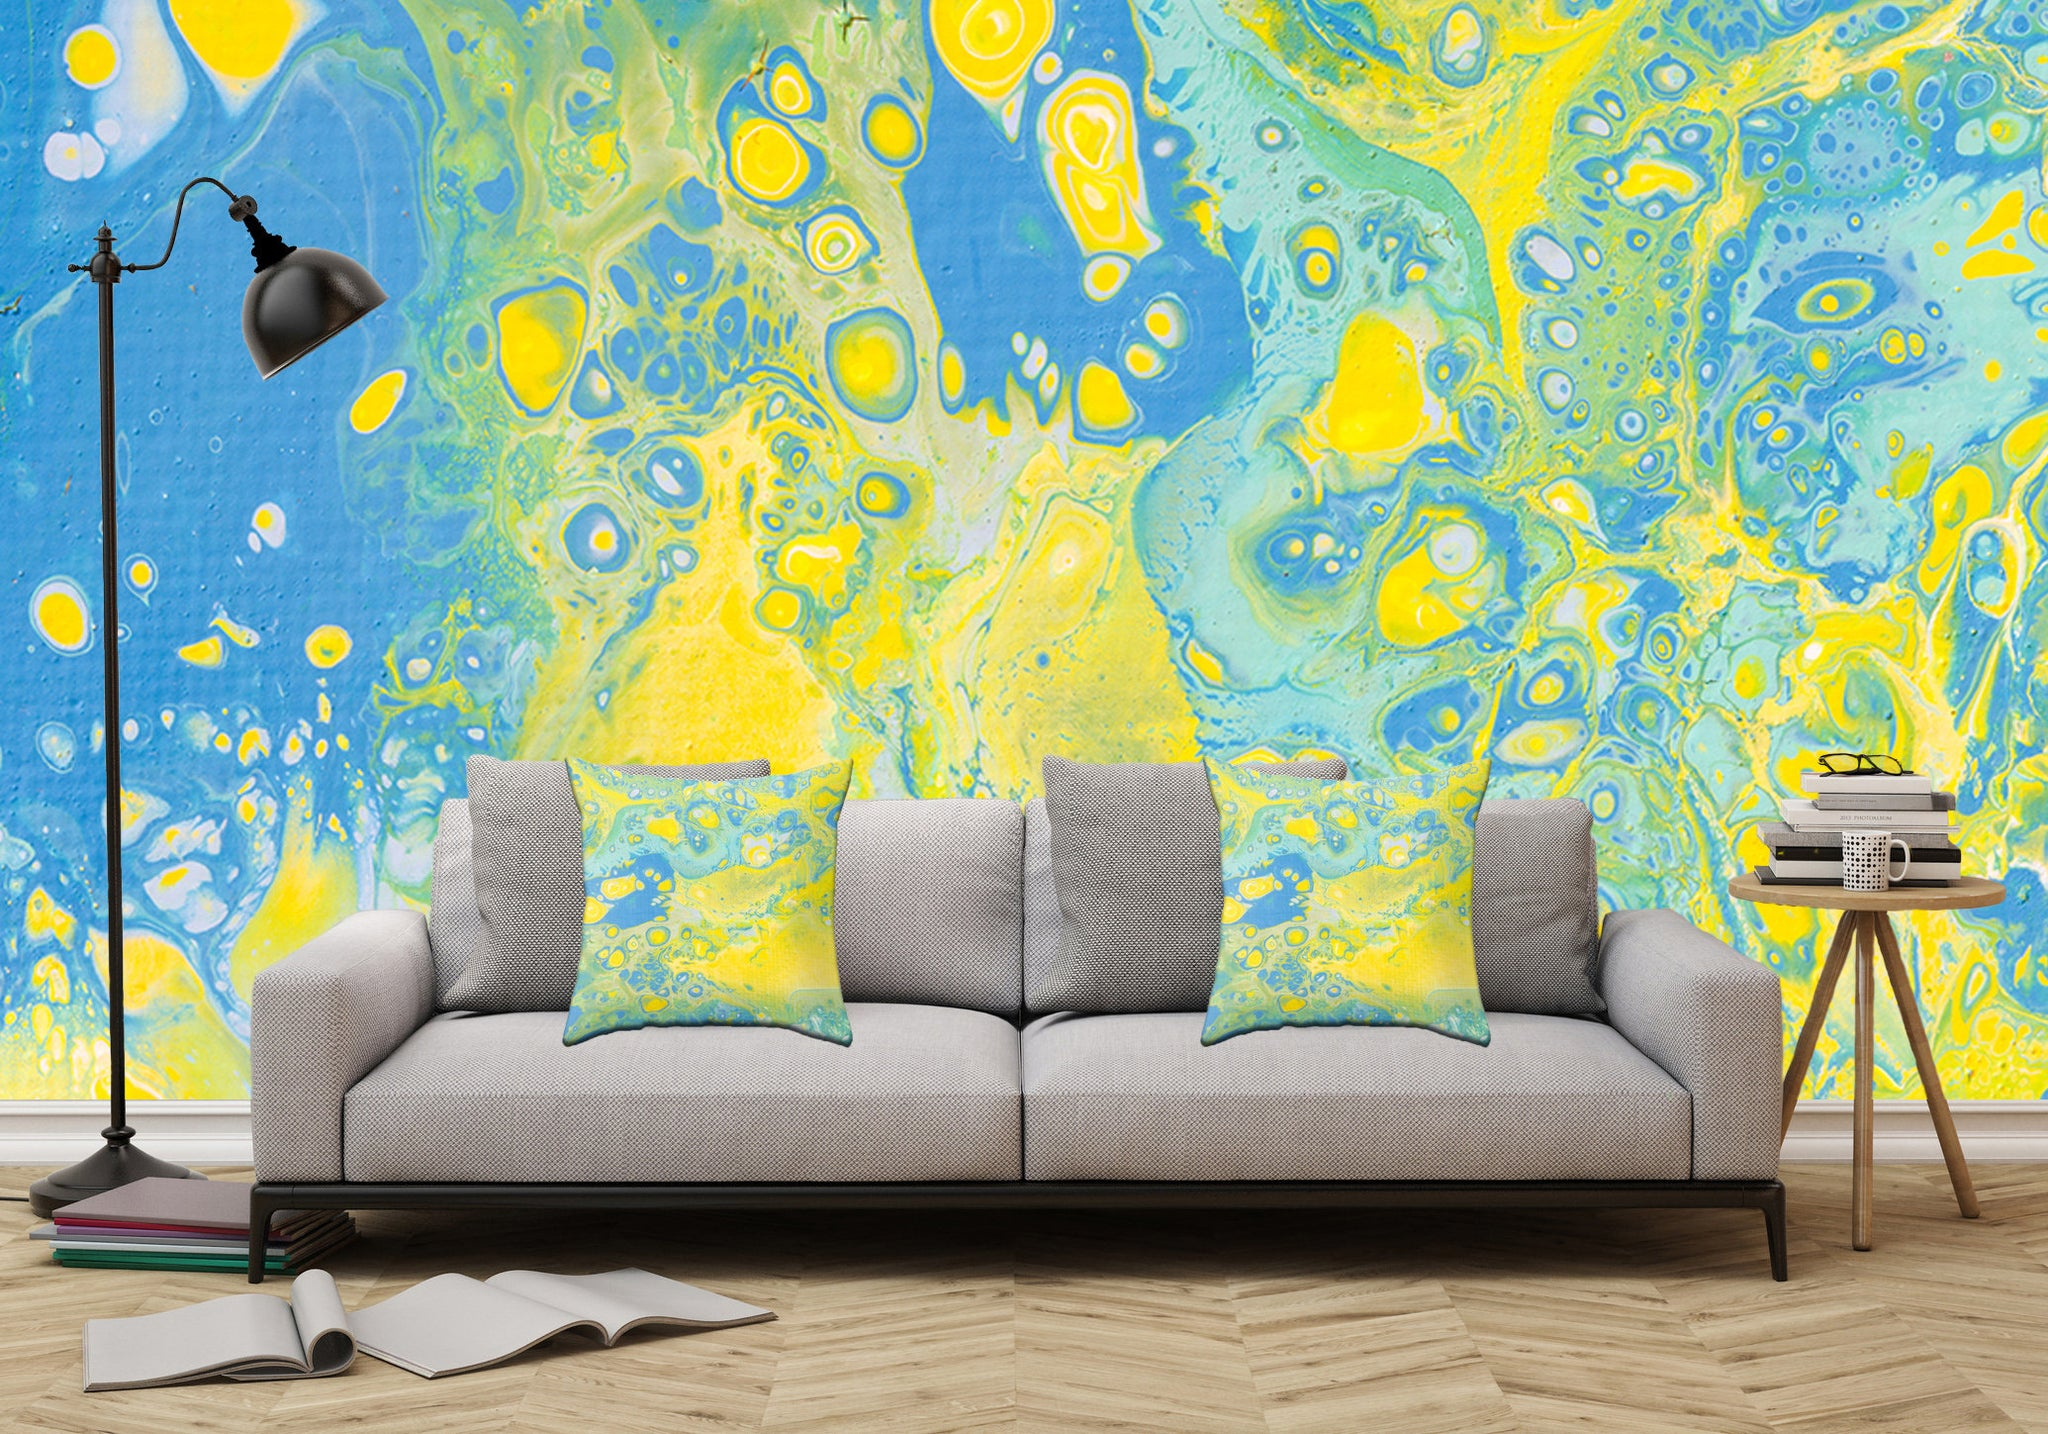 Removable Wall Mural - Wallpaper Abstract Artwork - Fluid Art Pour ...